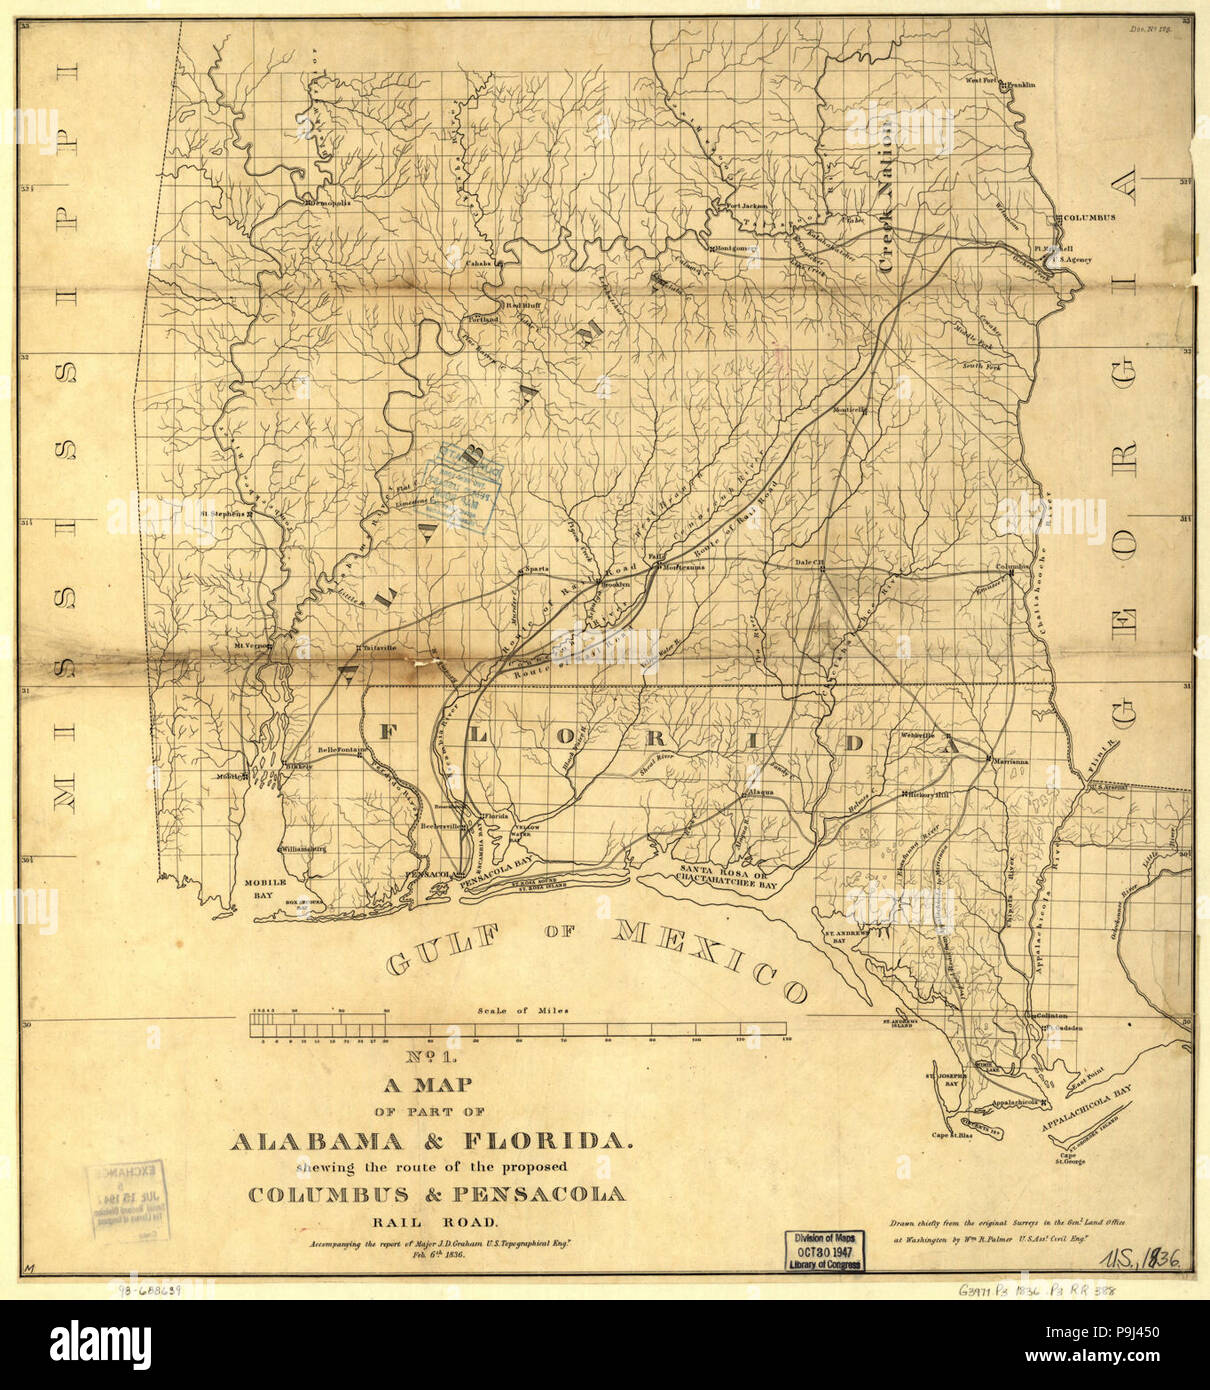 A map of part of Alabama & Florida, showing the route of the ...